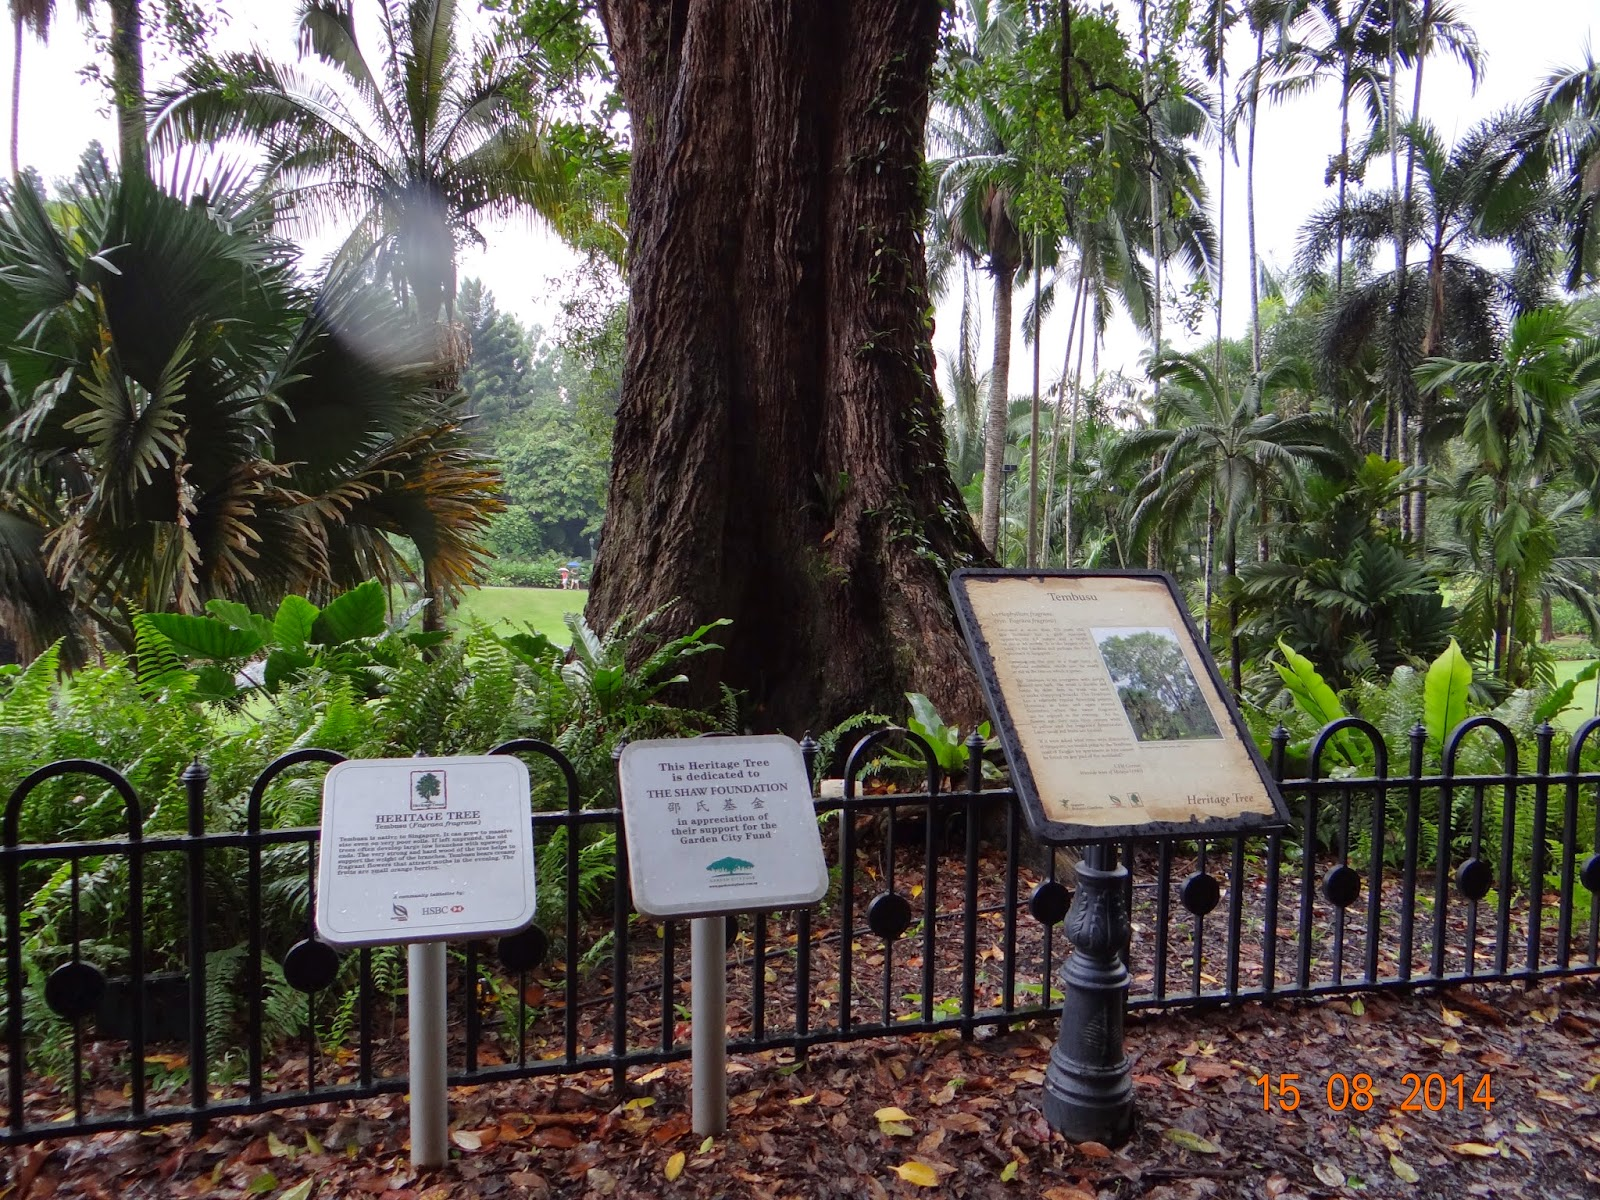 The 40m tall, more than 270 years old Singapore Botanic Gardens Heritage Tree - Tembusu (Fagraea Fragrans), a local native tree, fell on saturday, 11 February 2017 at about 4.30pm just before the planned Canada 150 concert and movie (have been cancelled after the accident).